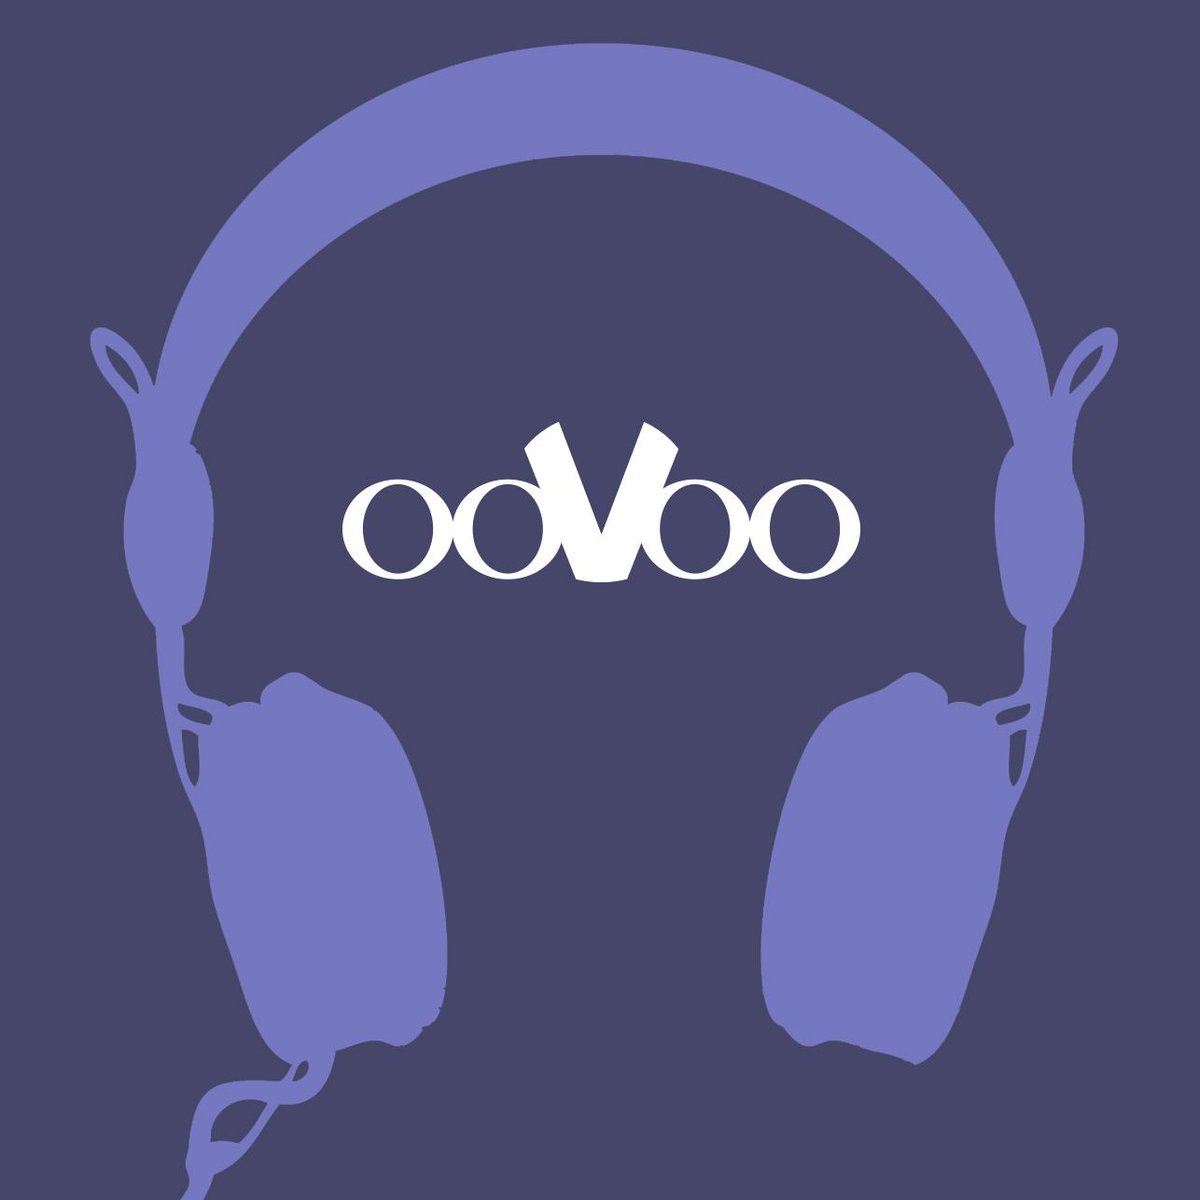 Get @ooVoo now: http://t.co/v9h1k4Kikh & RT to win @beatsbydre! More RTs = more entries. Ends 6/12! http://t.co/Q0YQx4w15G